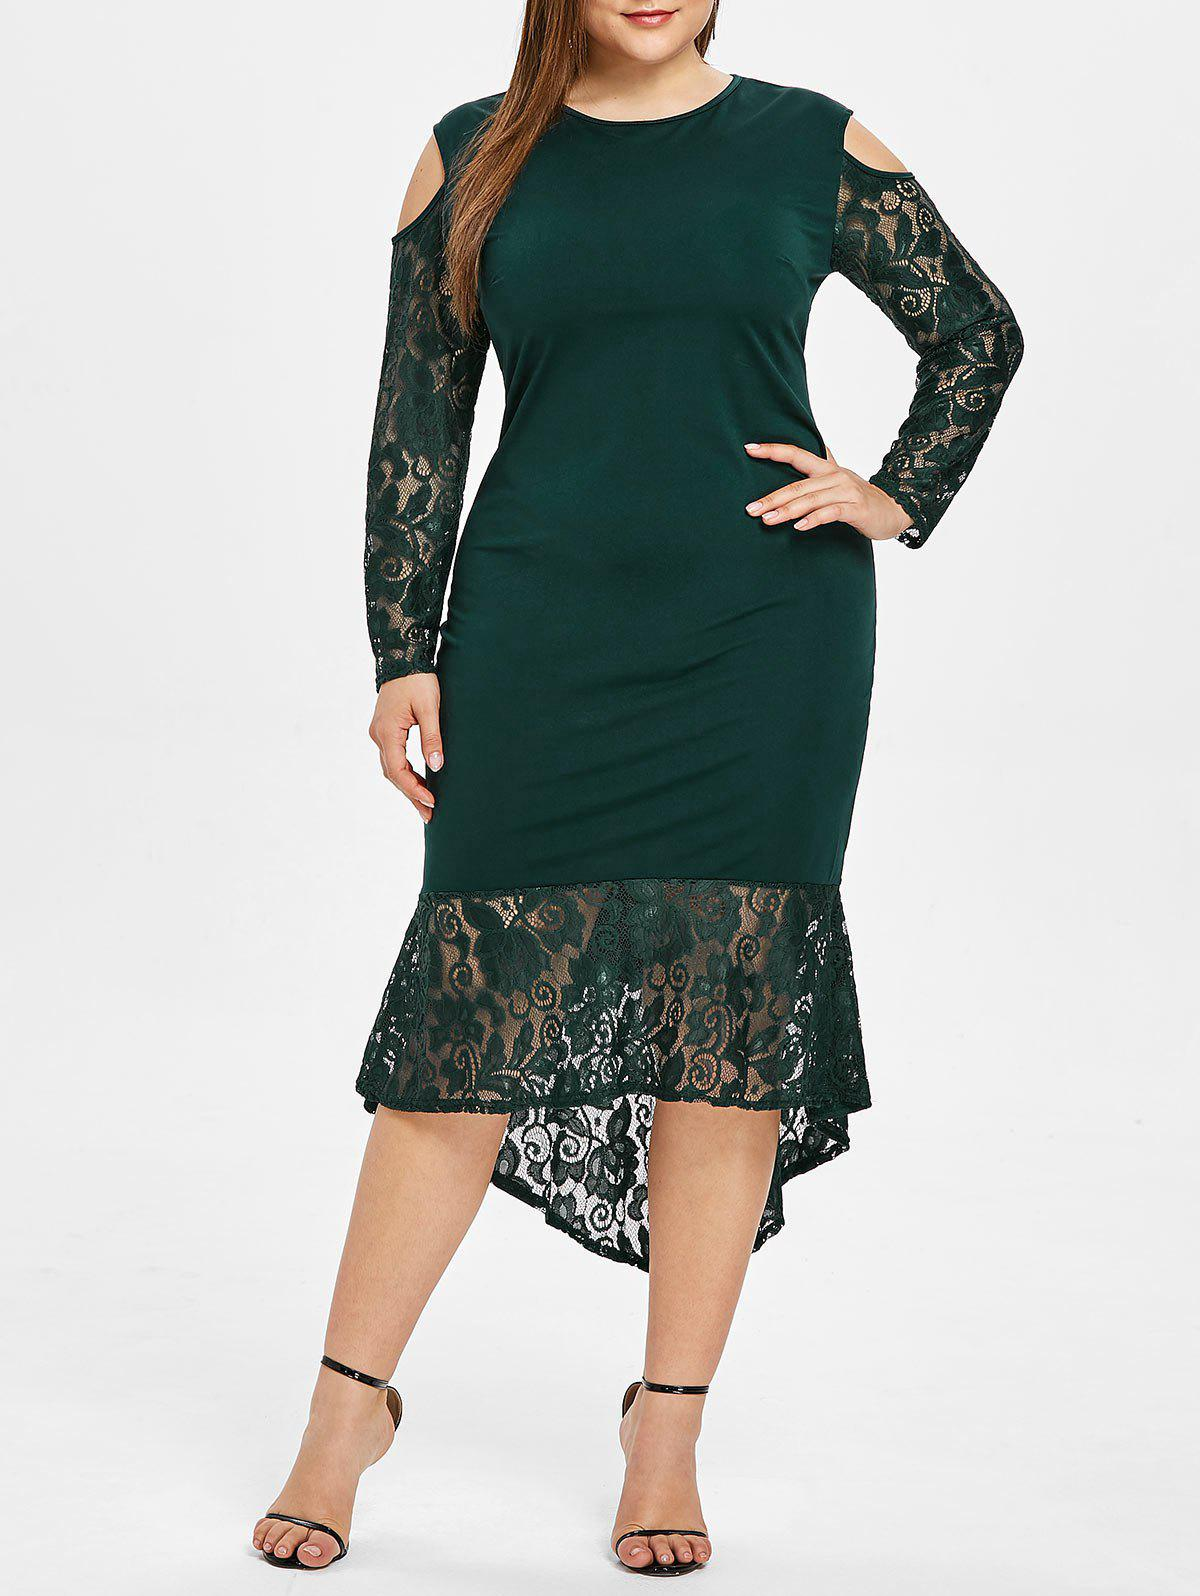 Store Lace Ruffle Hem Plus Size Bodycon Dress